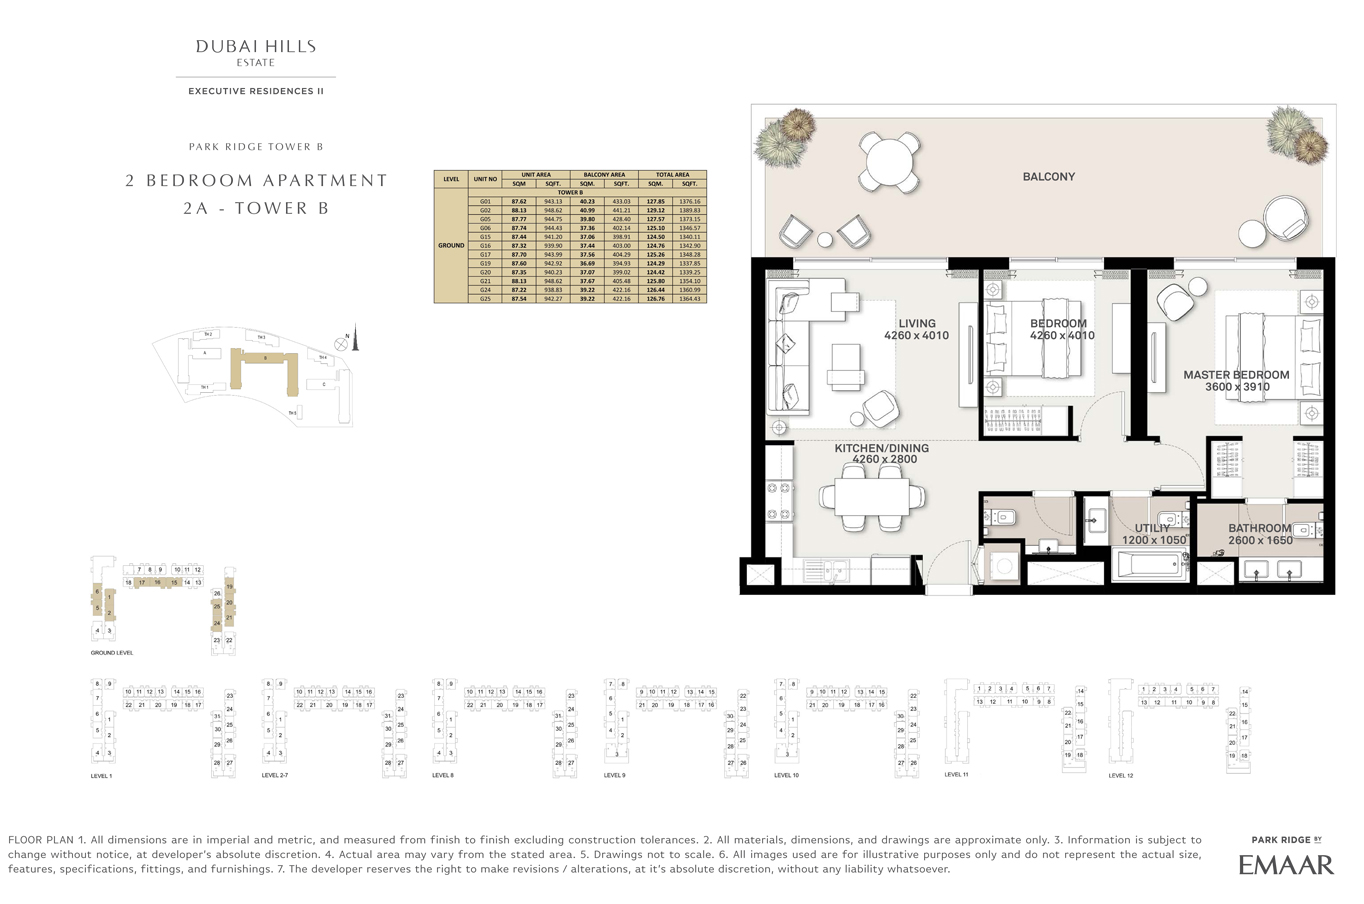 2 Bedroom Type 2A, Tower B, Size 1337 Sq Ft